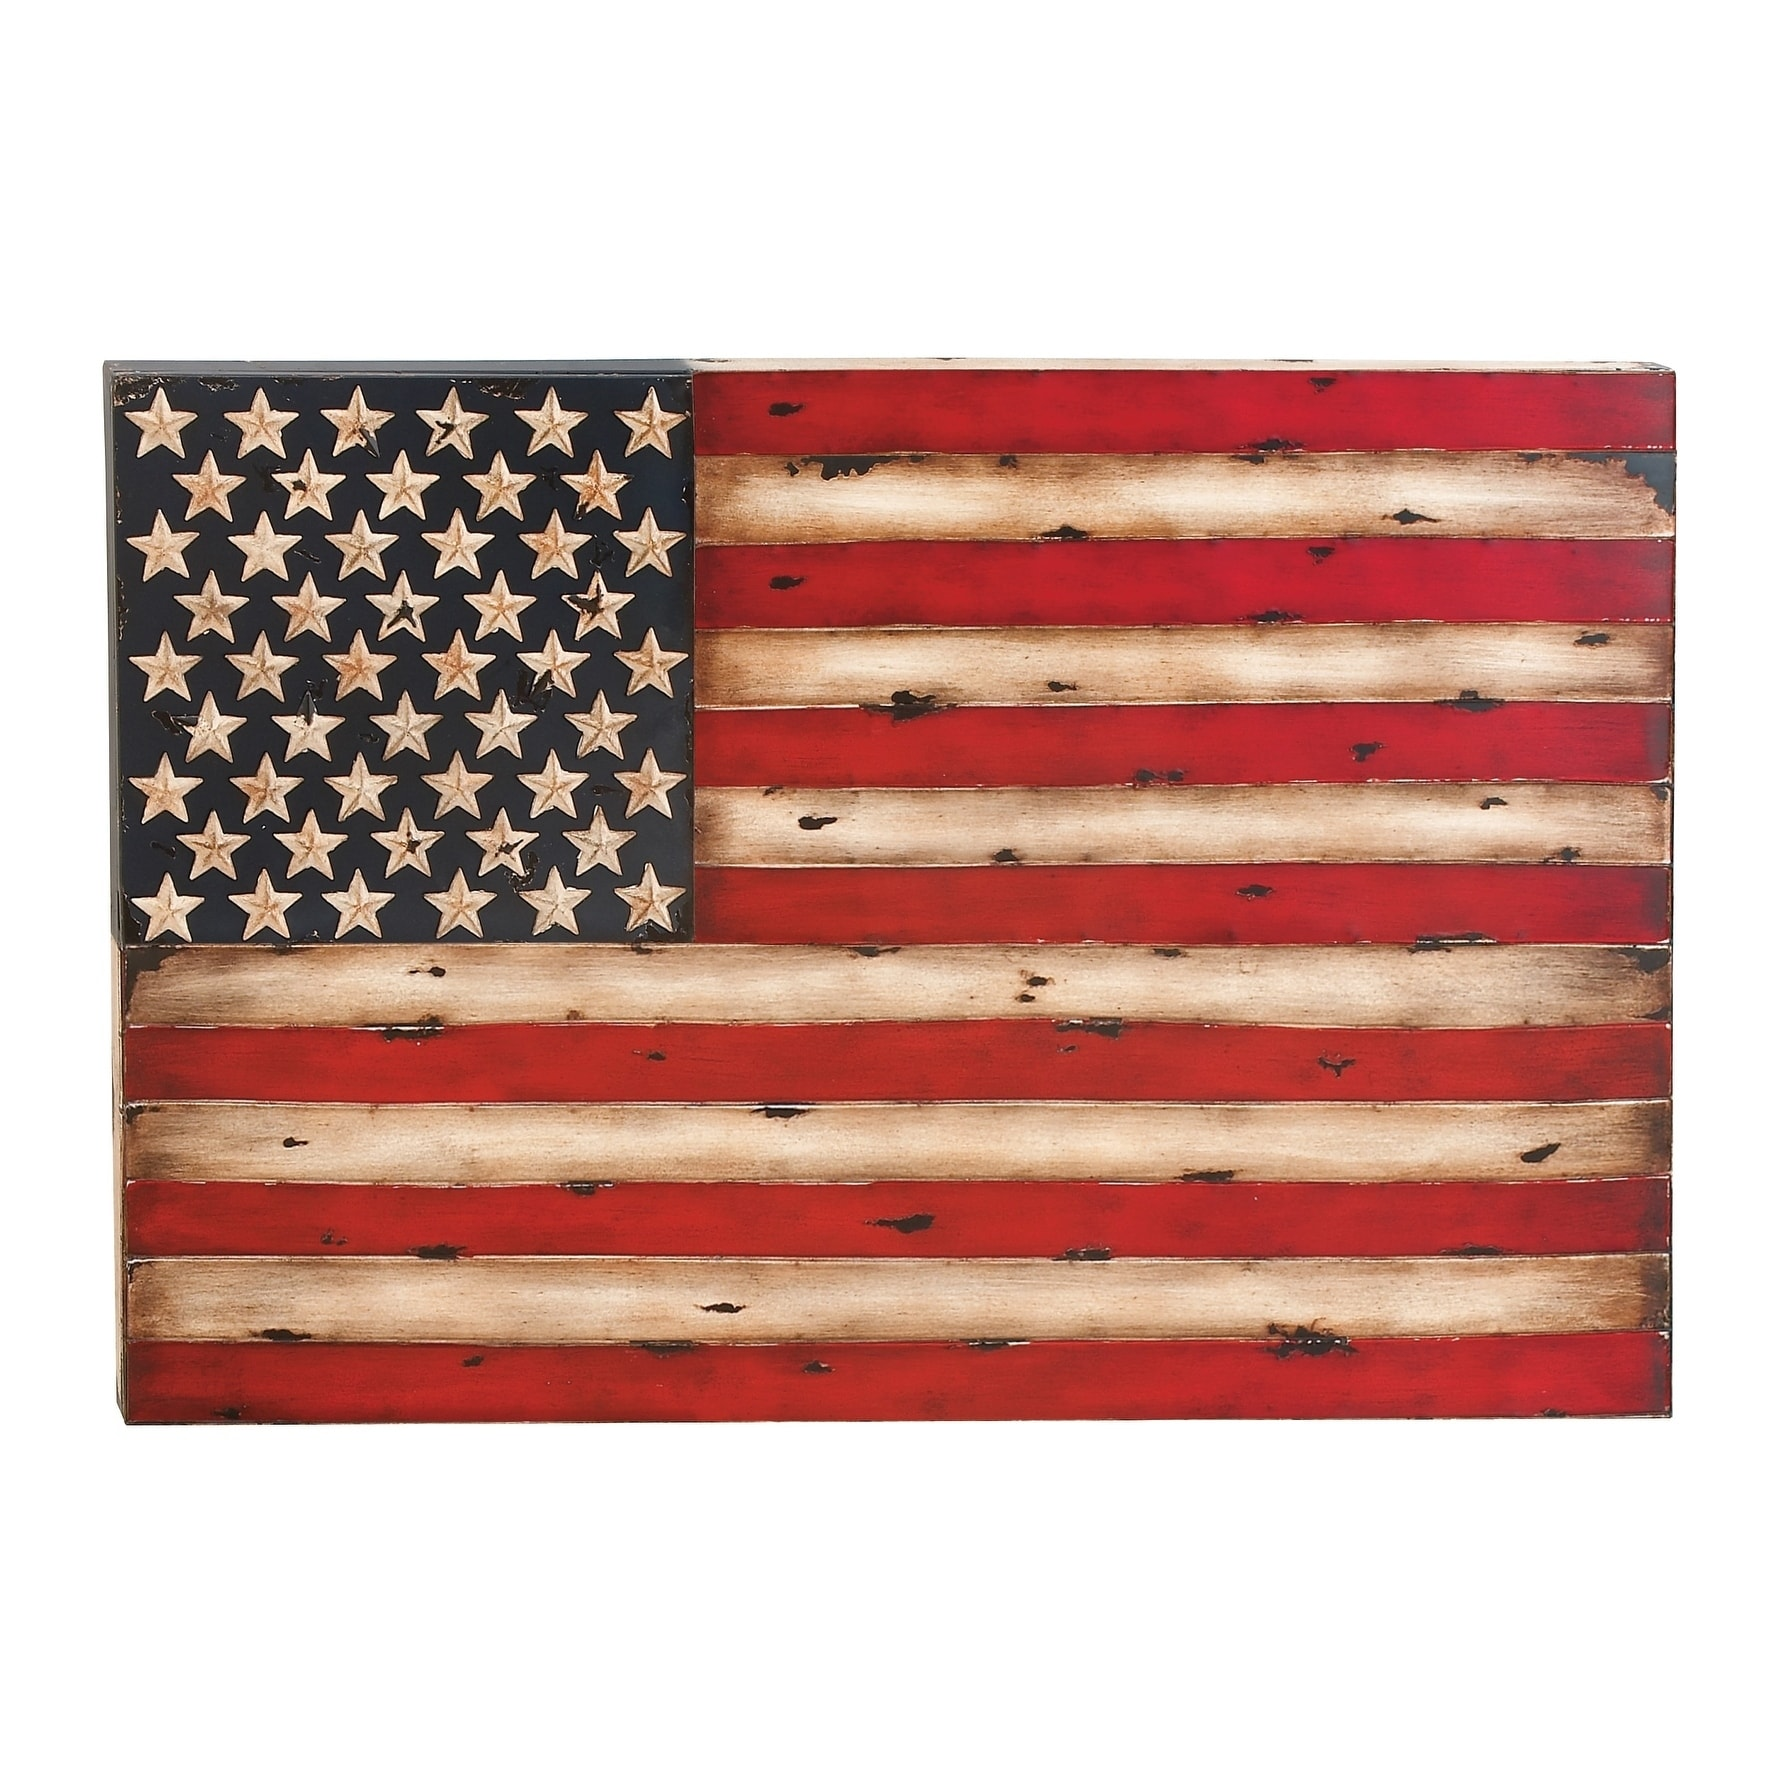 856ca93f92 Shop Eclectic 26 x 38 Inch American Flag Iron Wall Decor by Studio 350 - On  Sale - Free Shipping Today - Overstock - 8629245